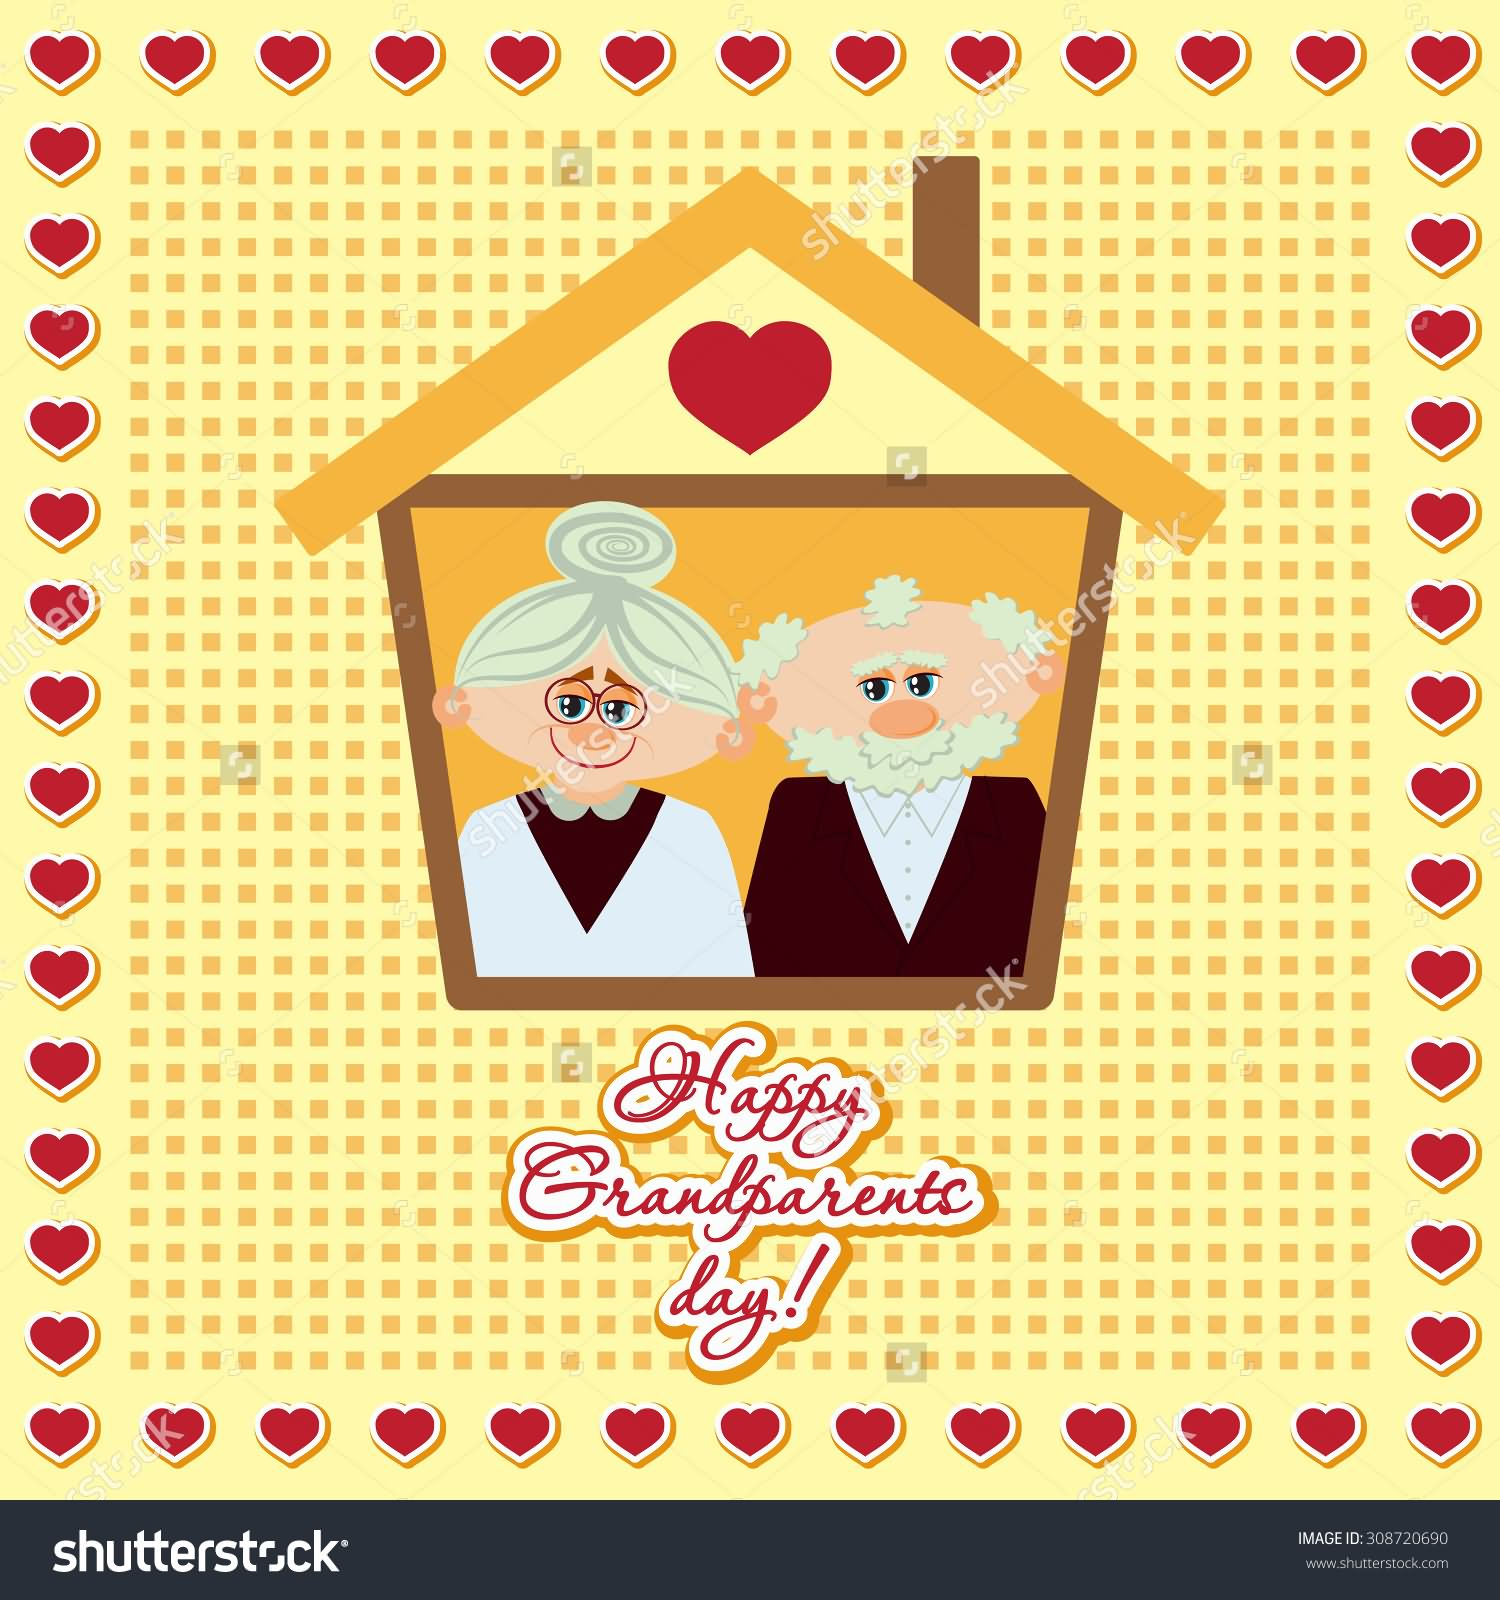 Card Making Ideas For Grandparents Day Part - 46: Happy Grandparents Day Greeting Card